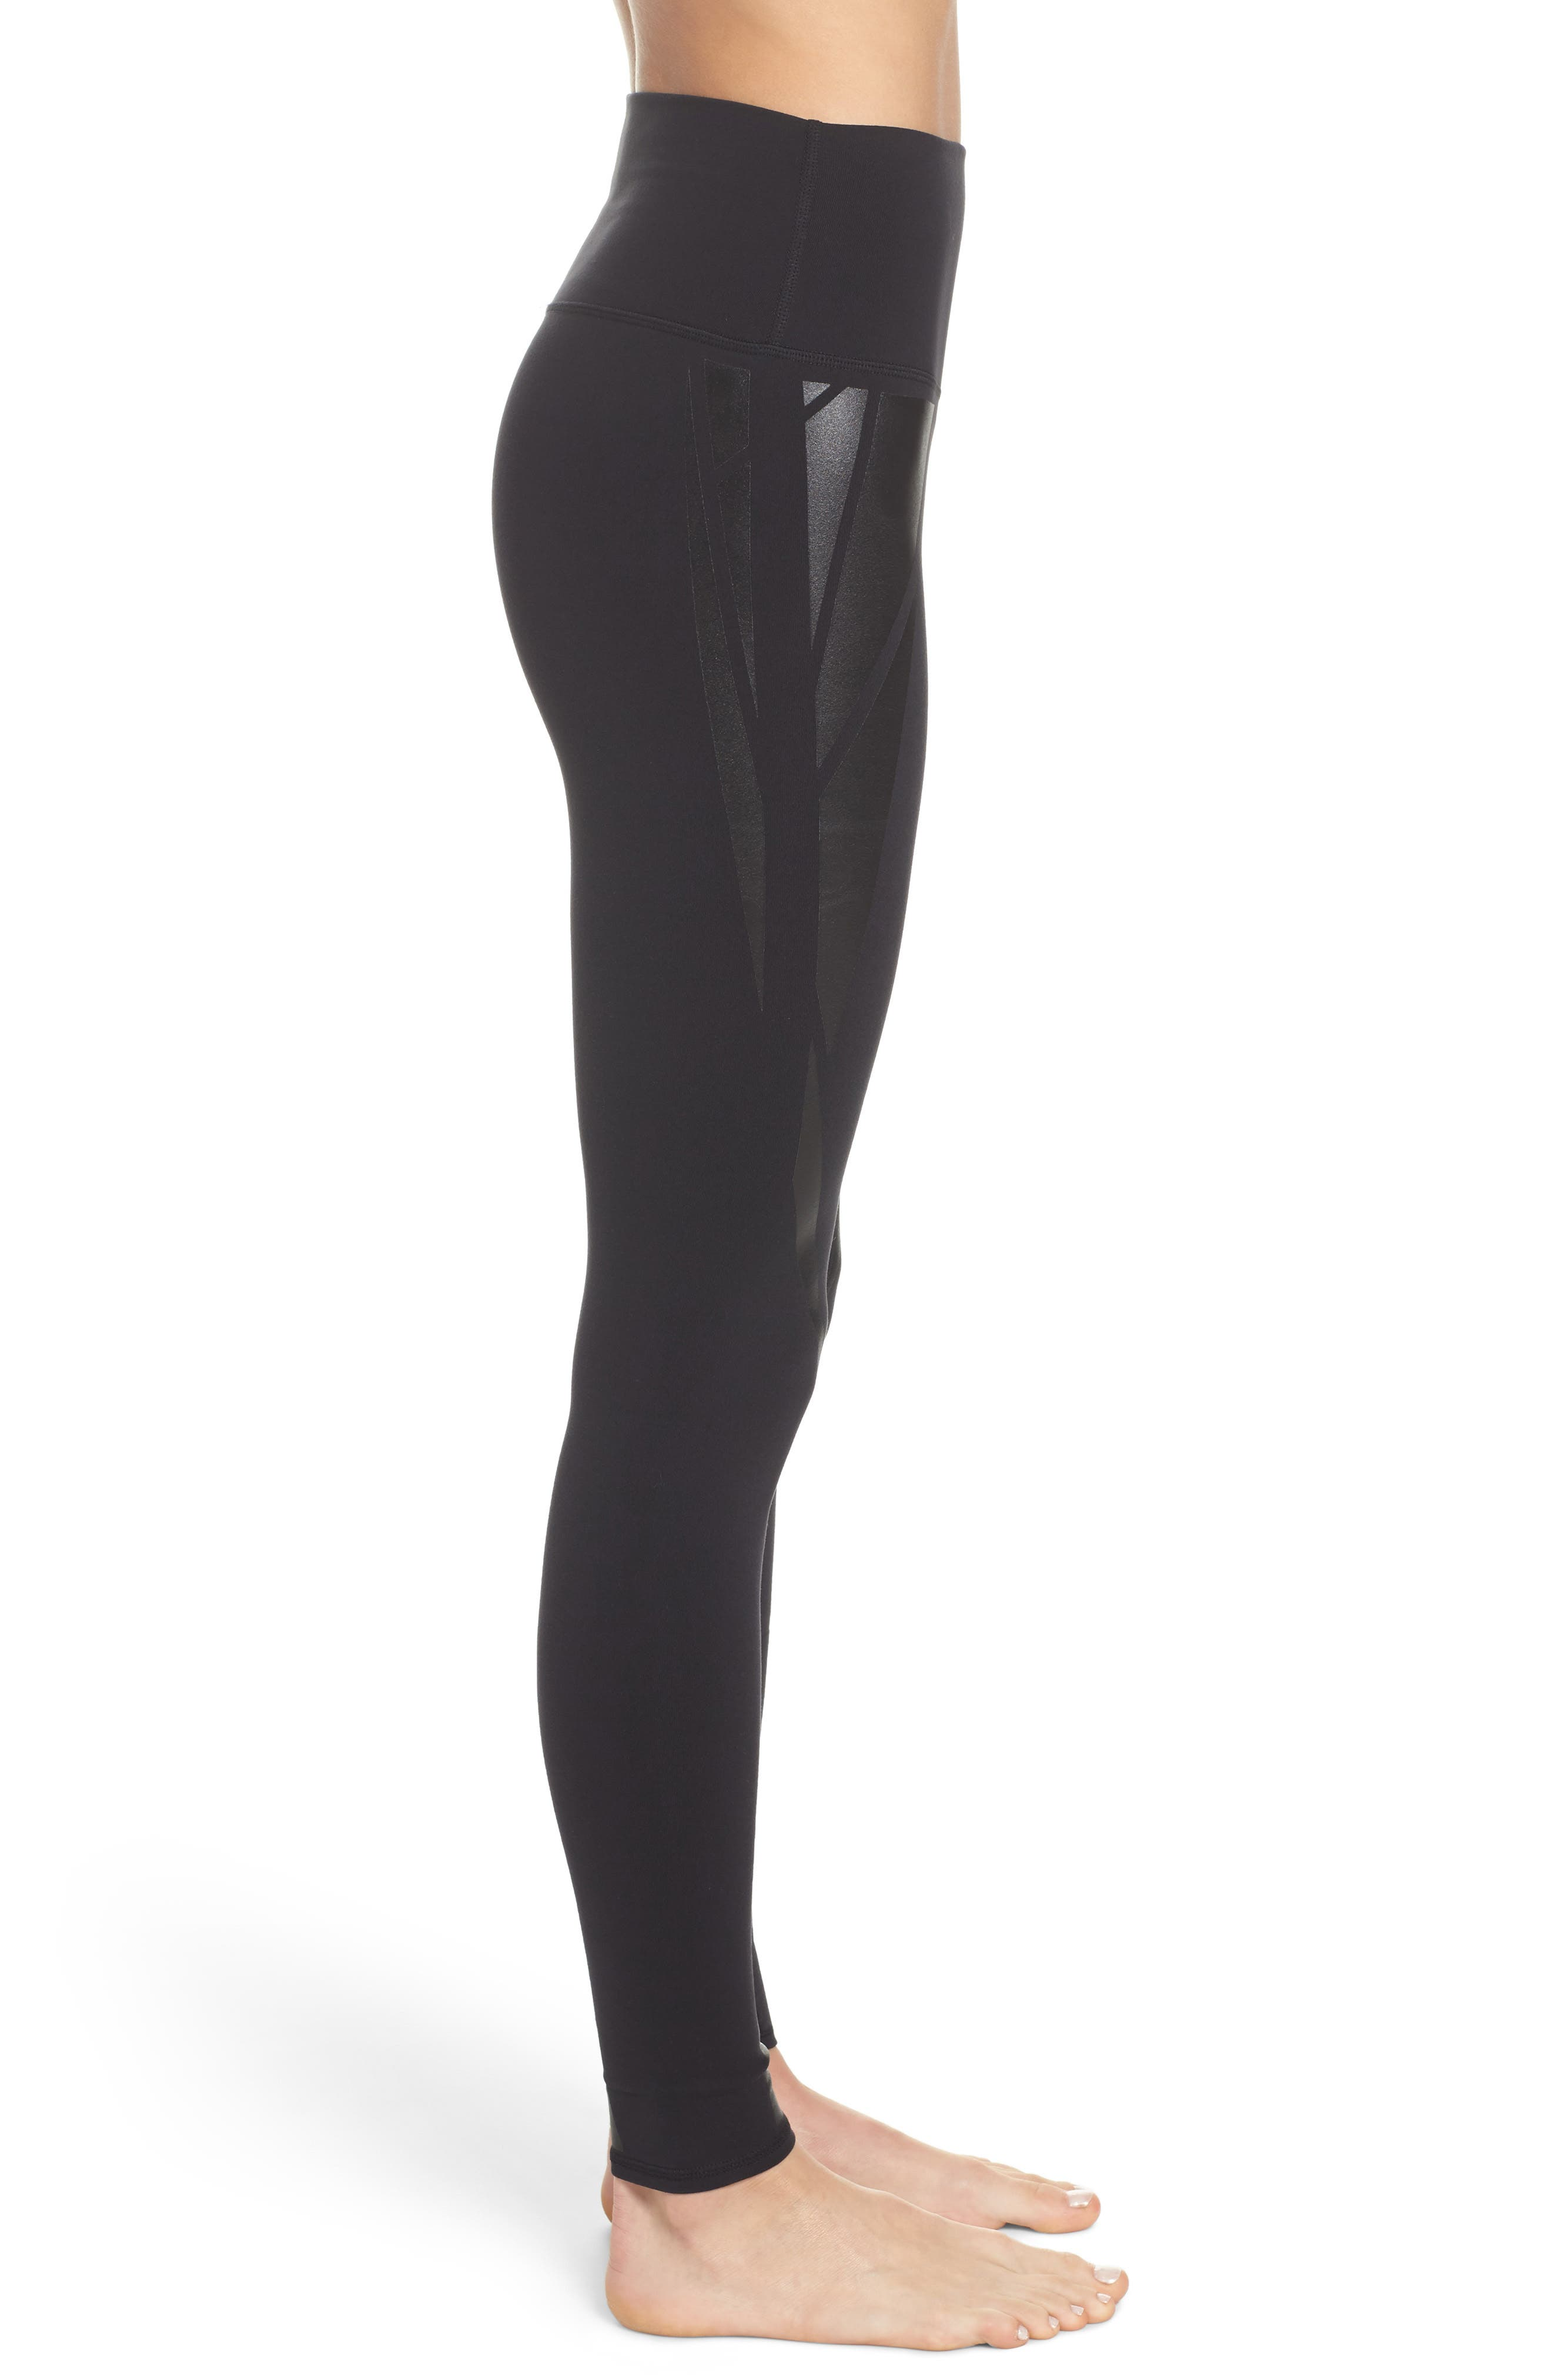 Airbrush High Waist Leggings,                             Alternate thumbnail 3, color,                             011